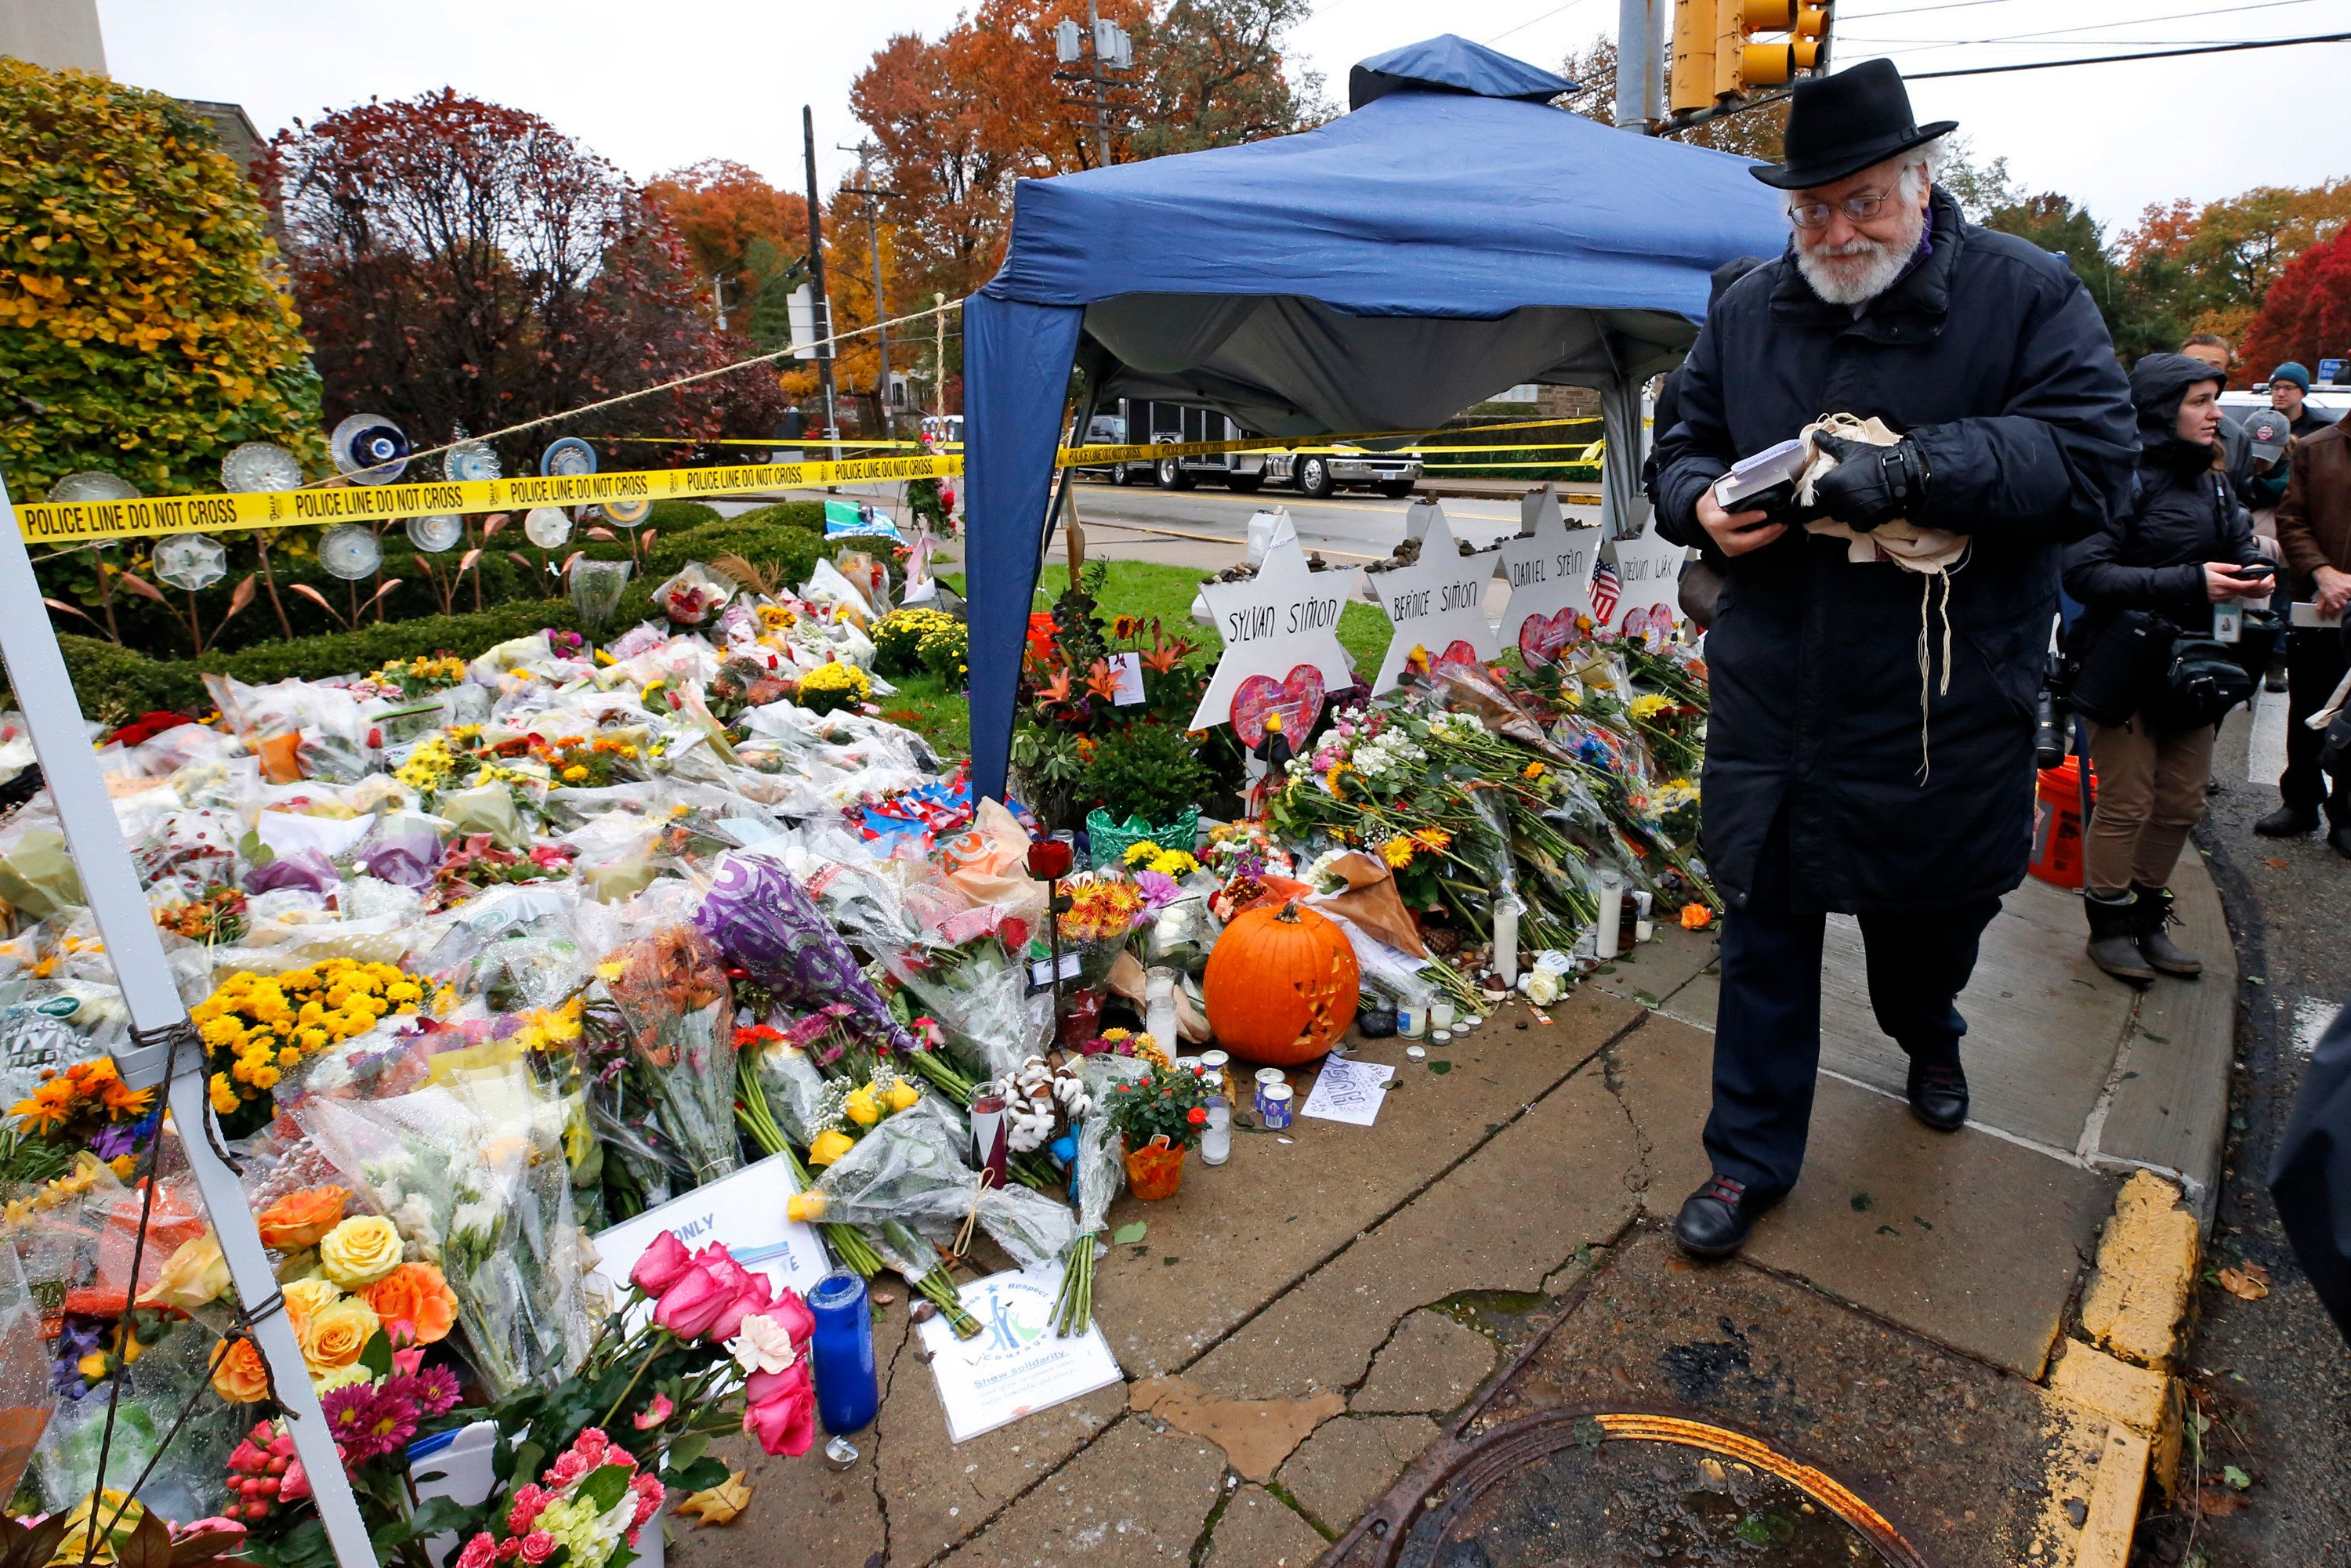 Rabbi Chuck Diamond arrives on the street corner outside the Tree of Life Synagogue on Nov. 3, 2018, to lead a Shabbat morning service one week after 11 people were killed and six wounded in a shooting at the synagogue.